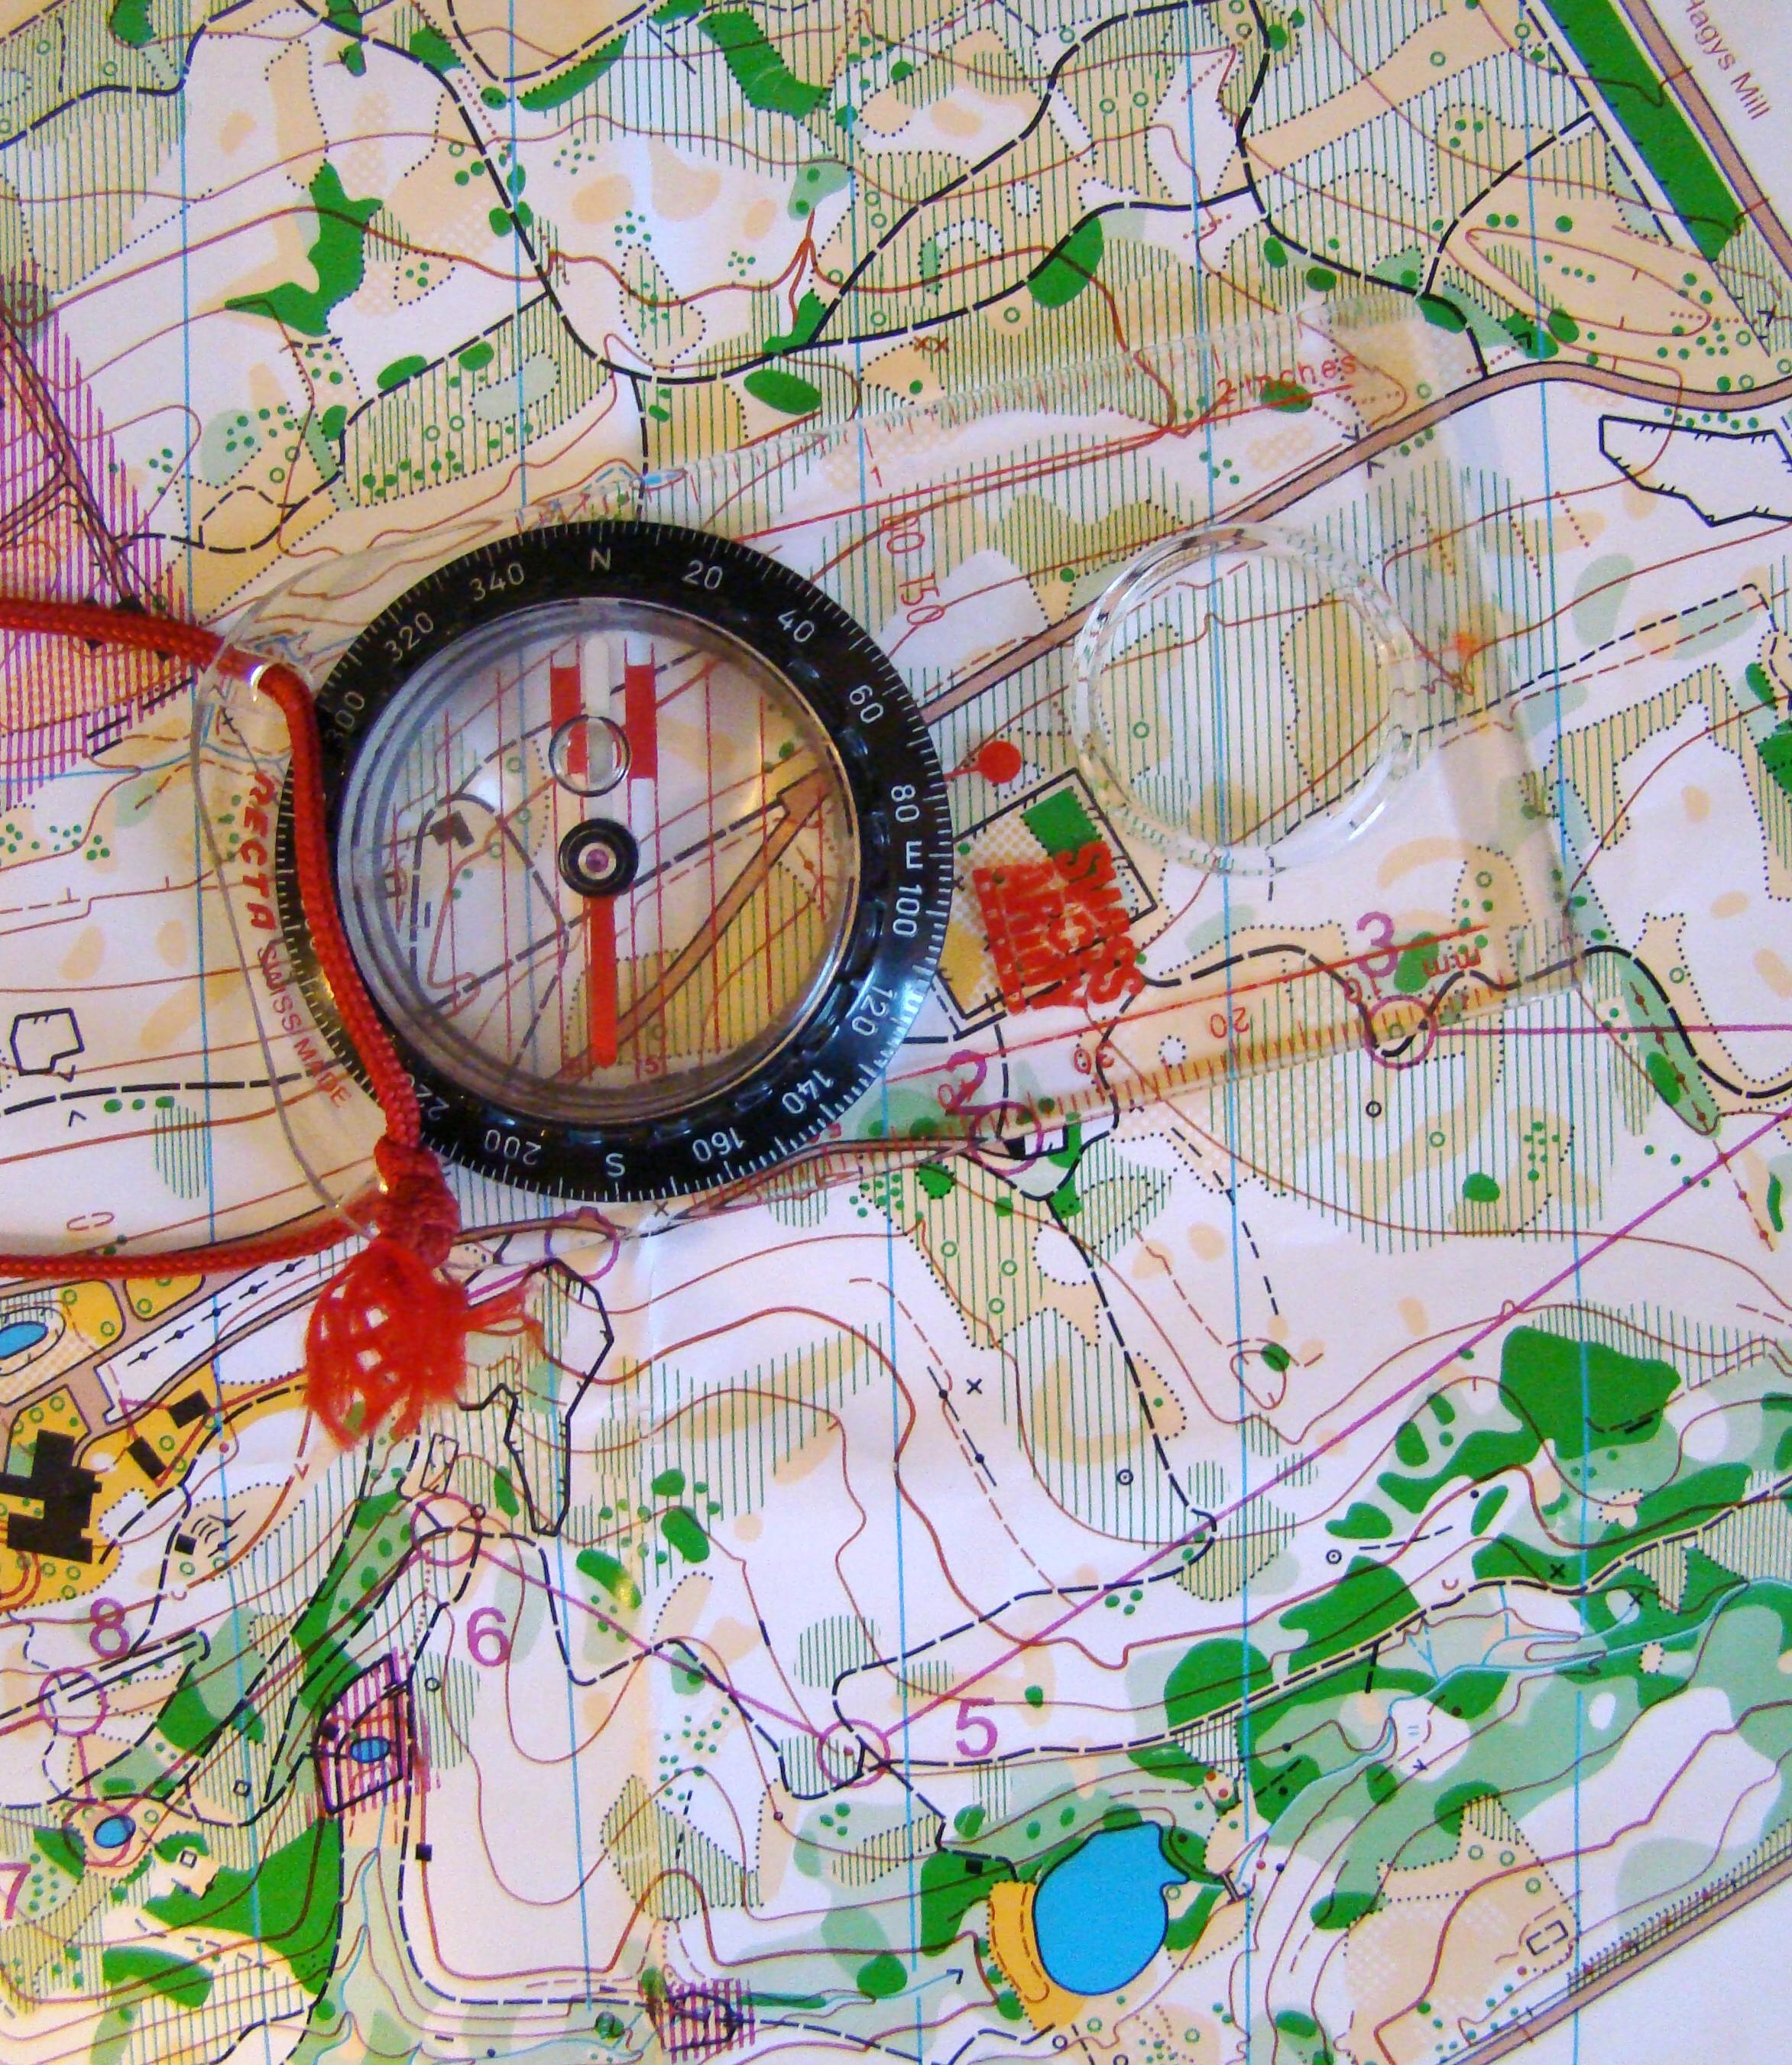 Besides our brains, the map and compass are the tools of orienteering.